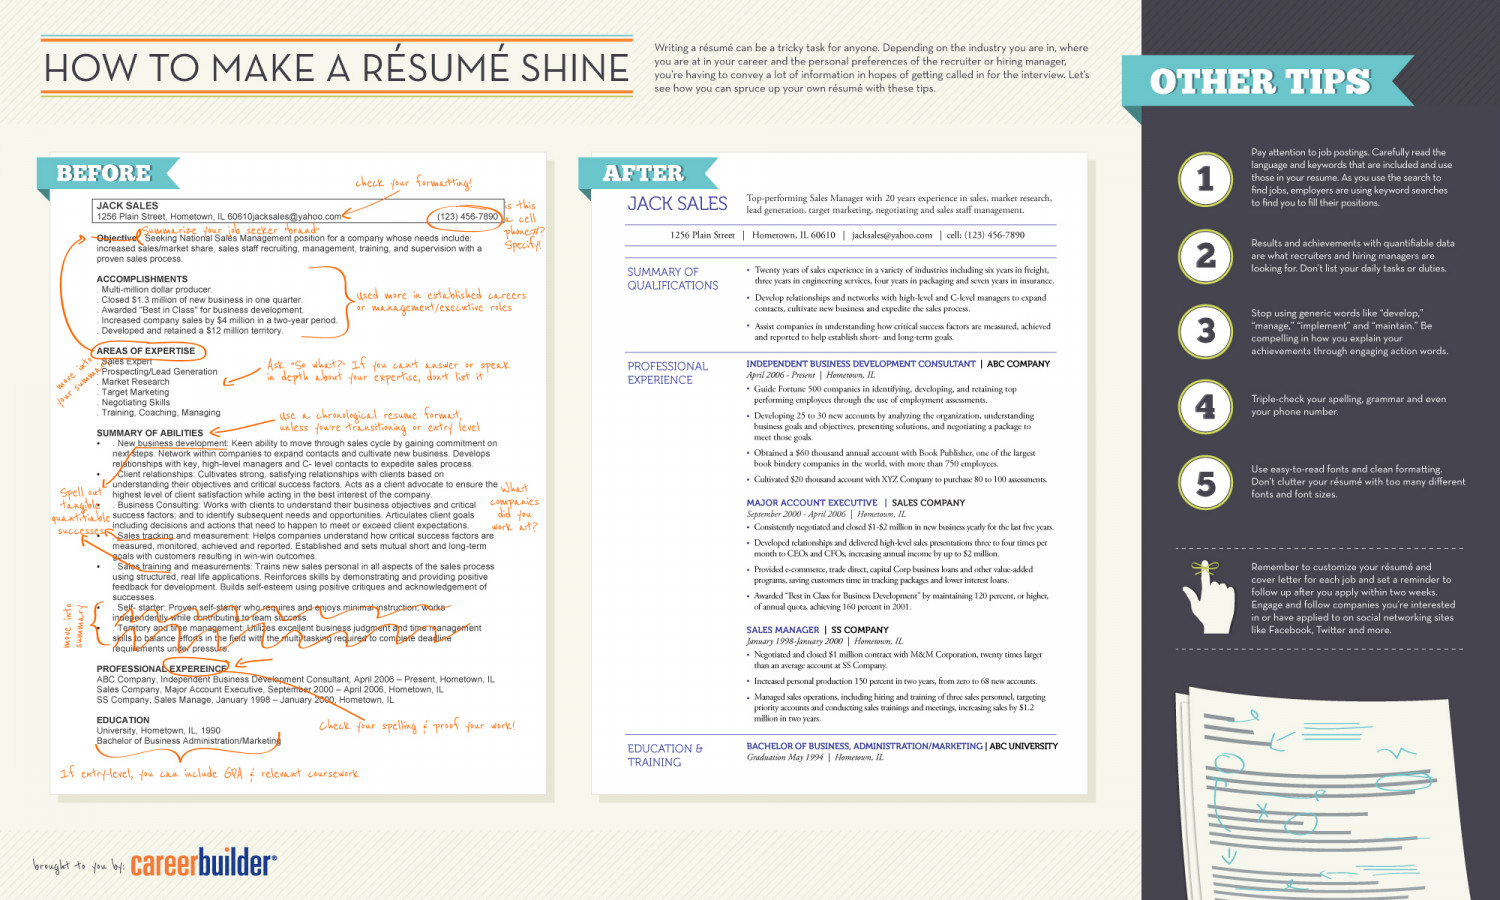 How To Make A Résumé Shine Infographic  Help Me Make A Resume